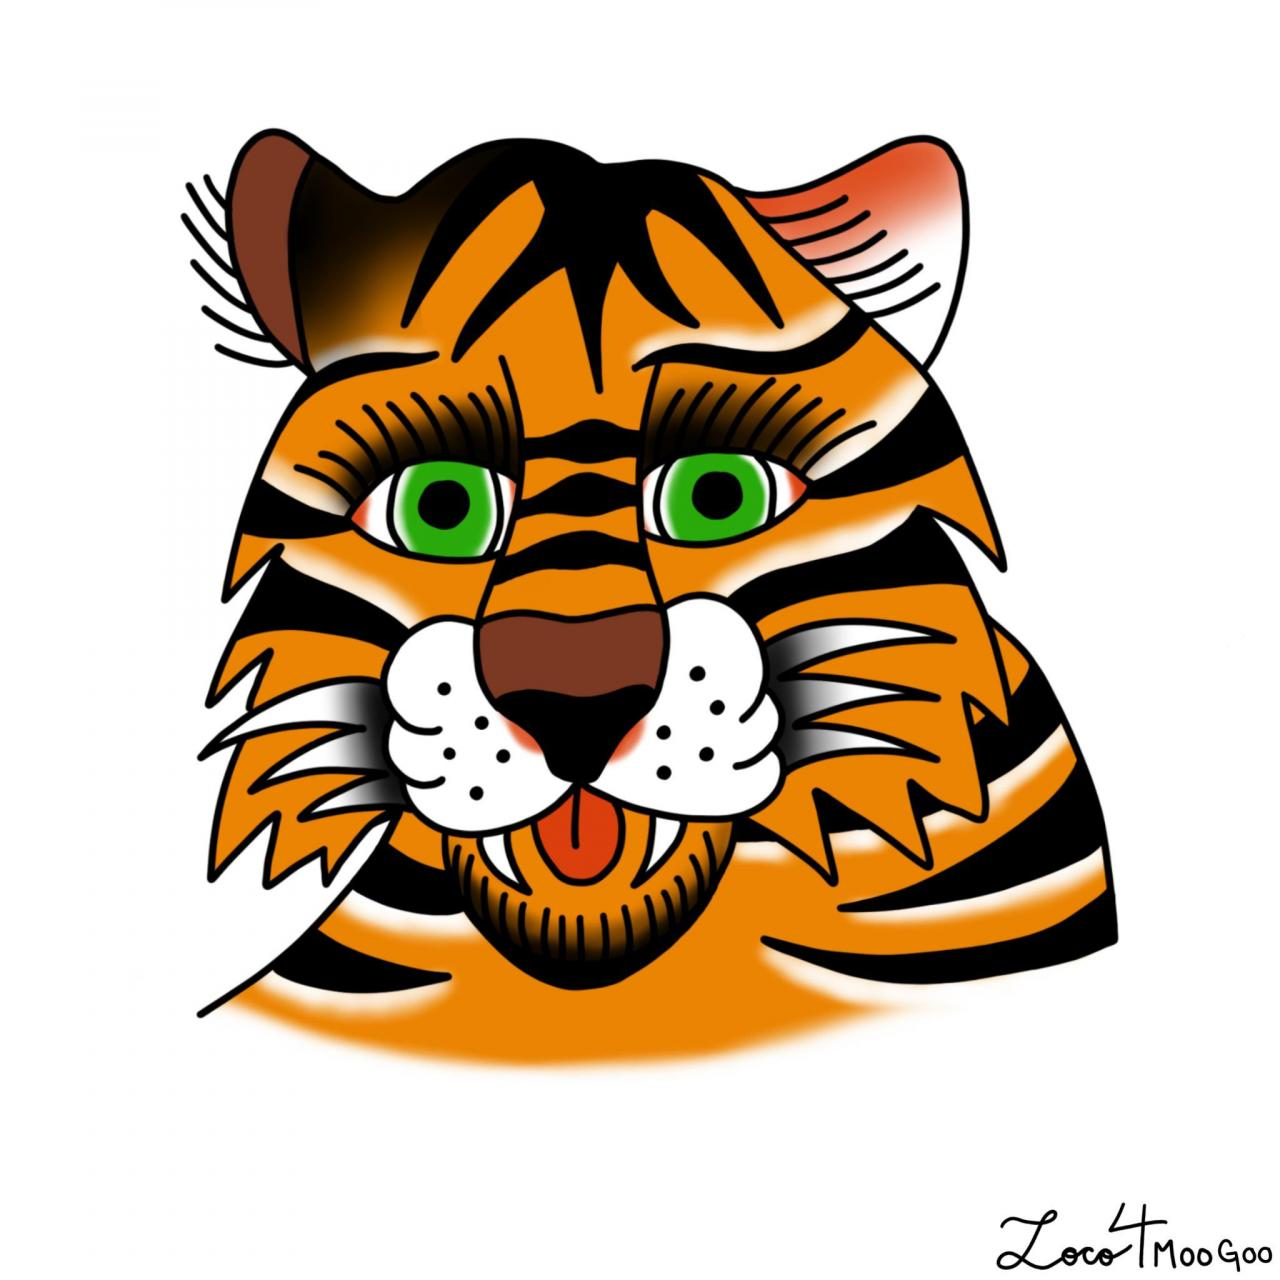 Tiger head I designed today on Procreate! Beginner artist open to critiques.